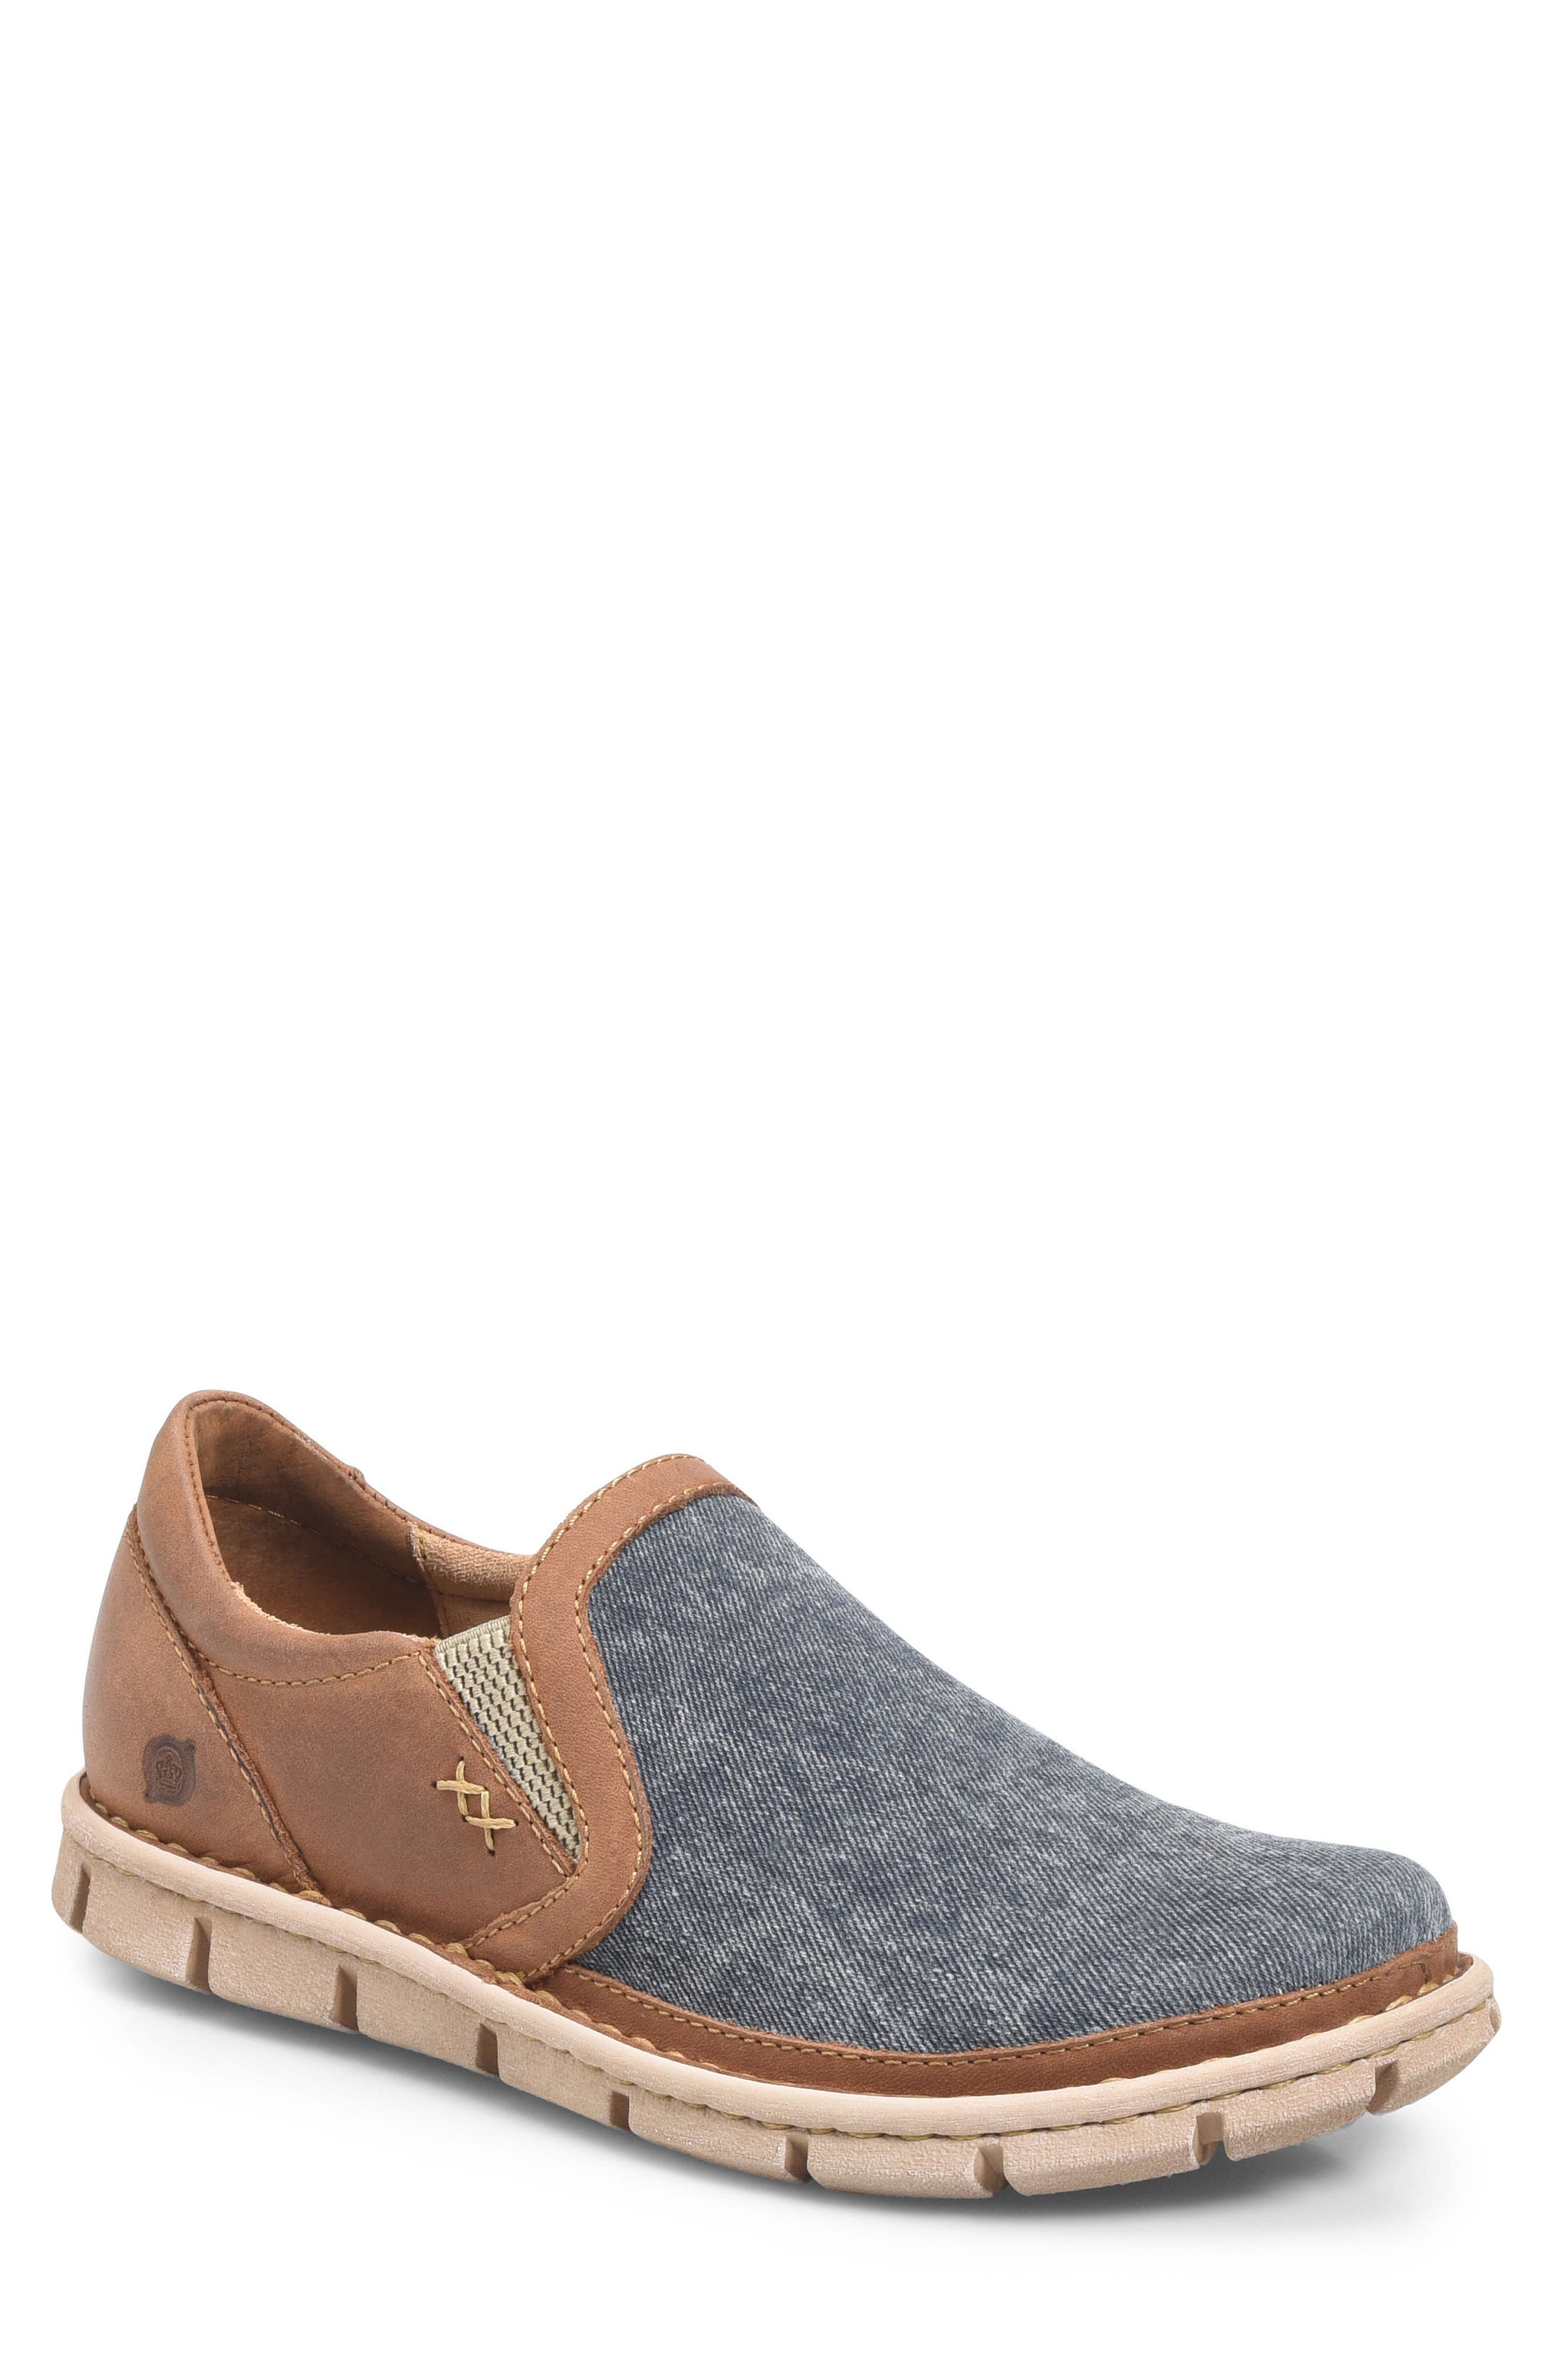 'Sawyer' Leather Slip-On,                         Main,                         color, Navy/ Light Brown Canvas